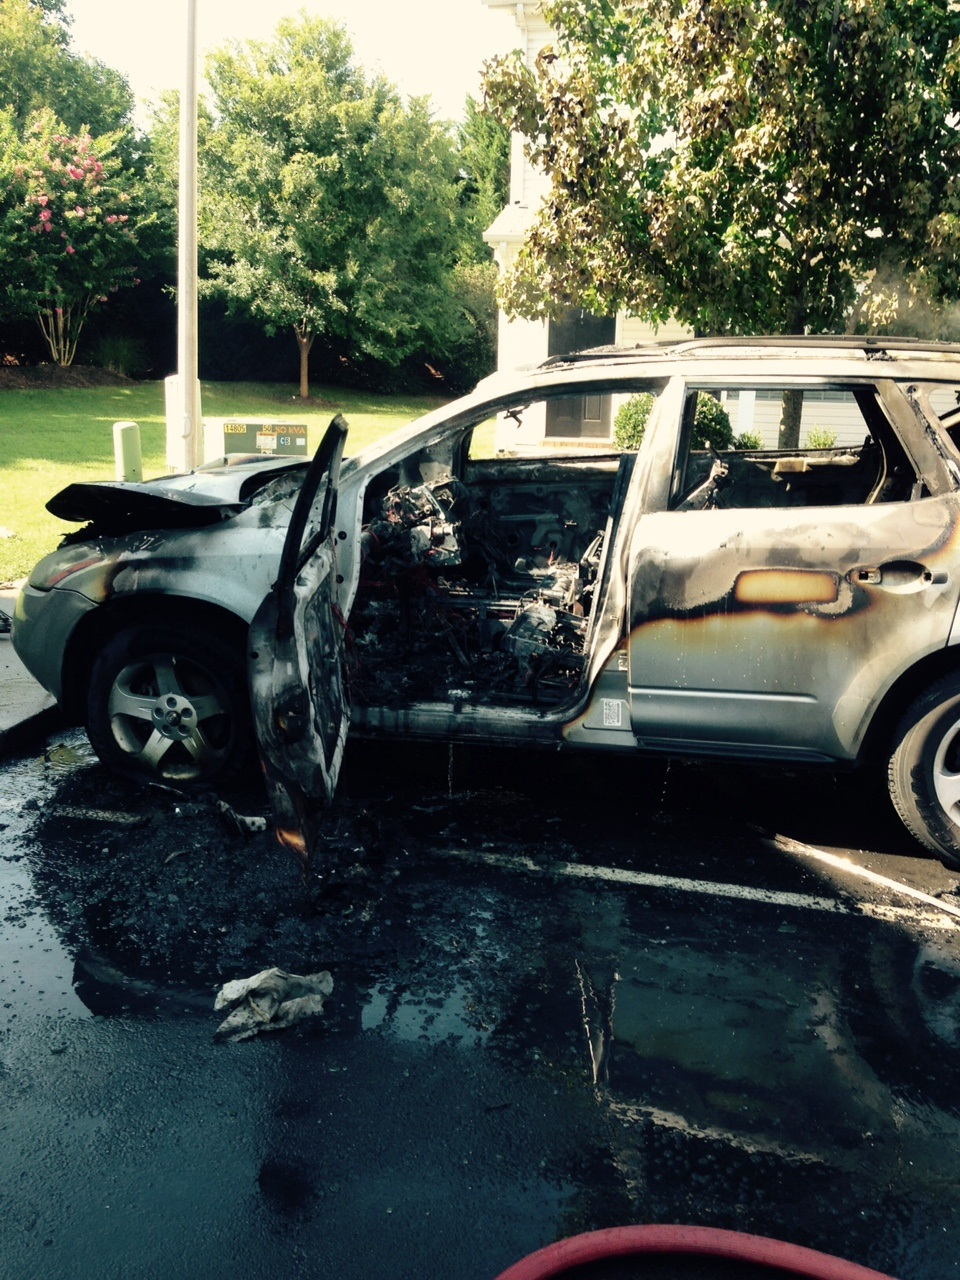 Two vehicles go up in flames in Murfreesboro - Arson suspected